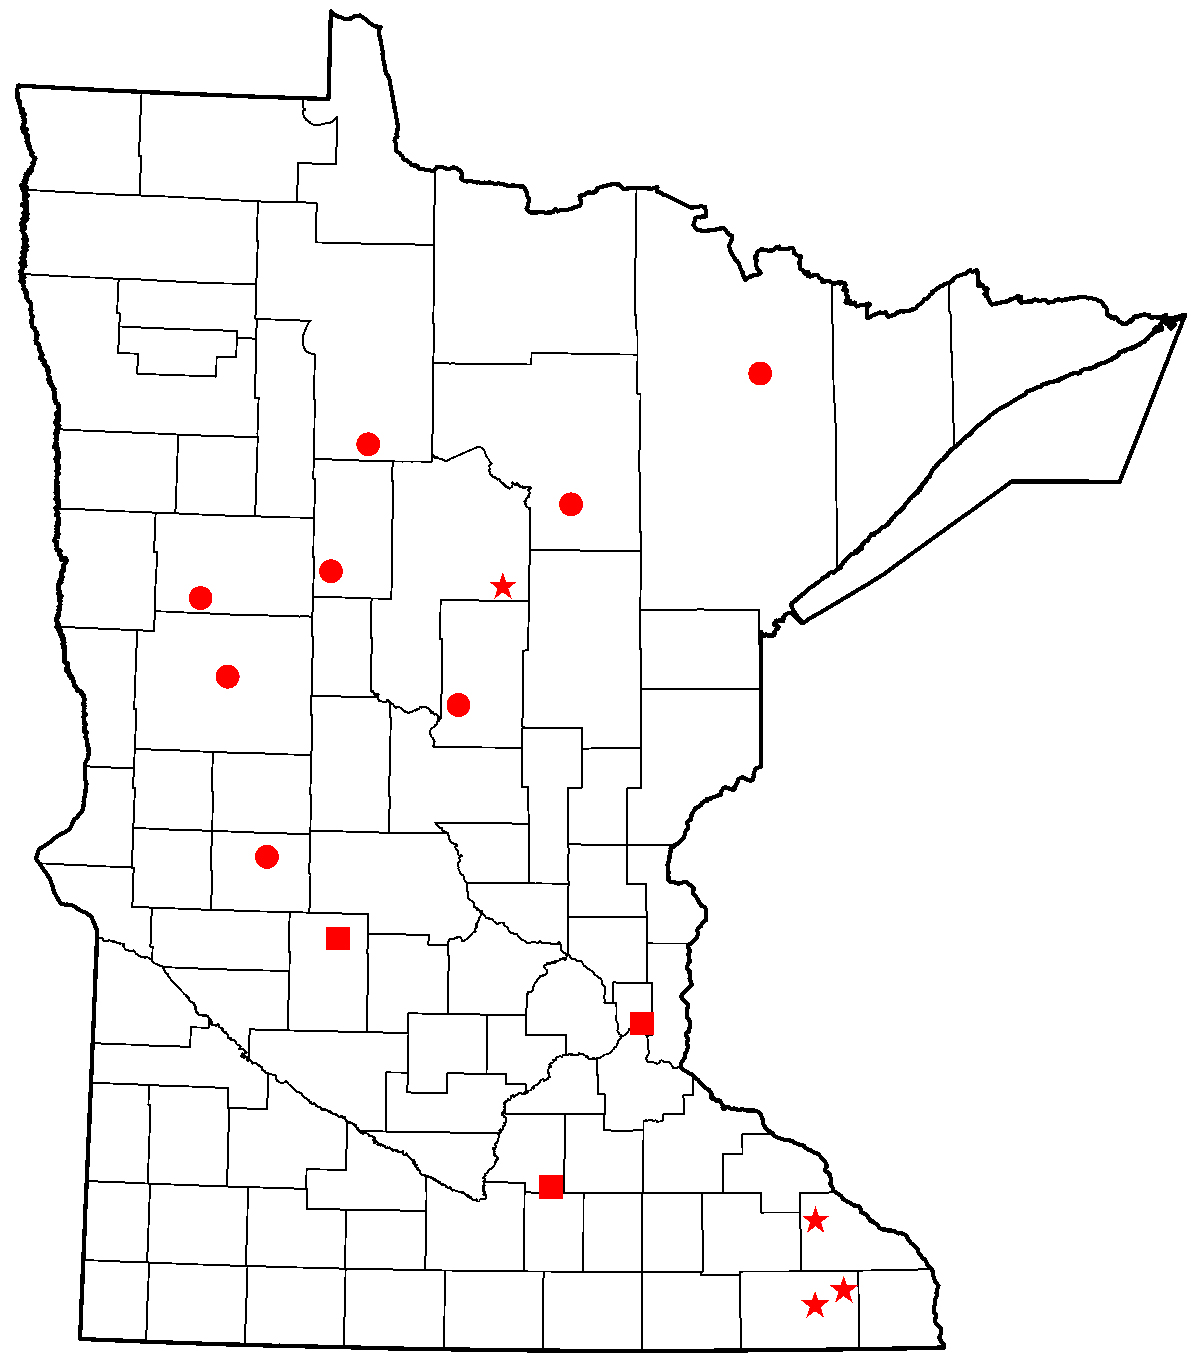 Map showing locations of DNR fish hatcheries